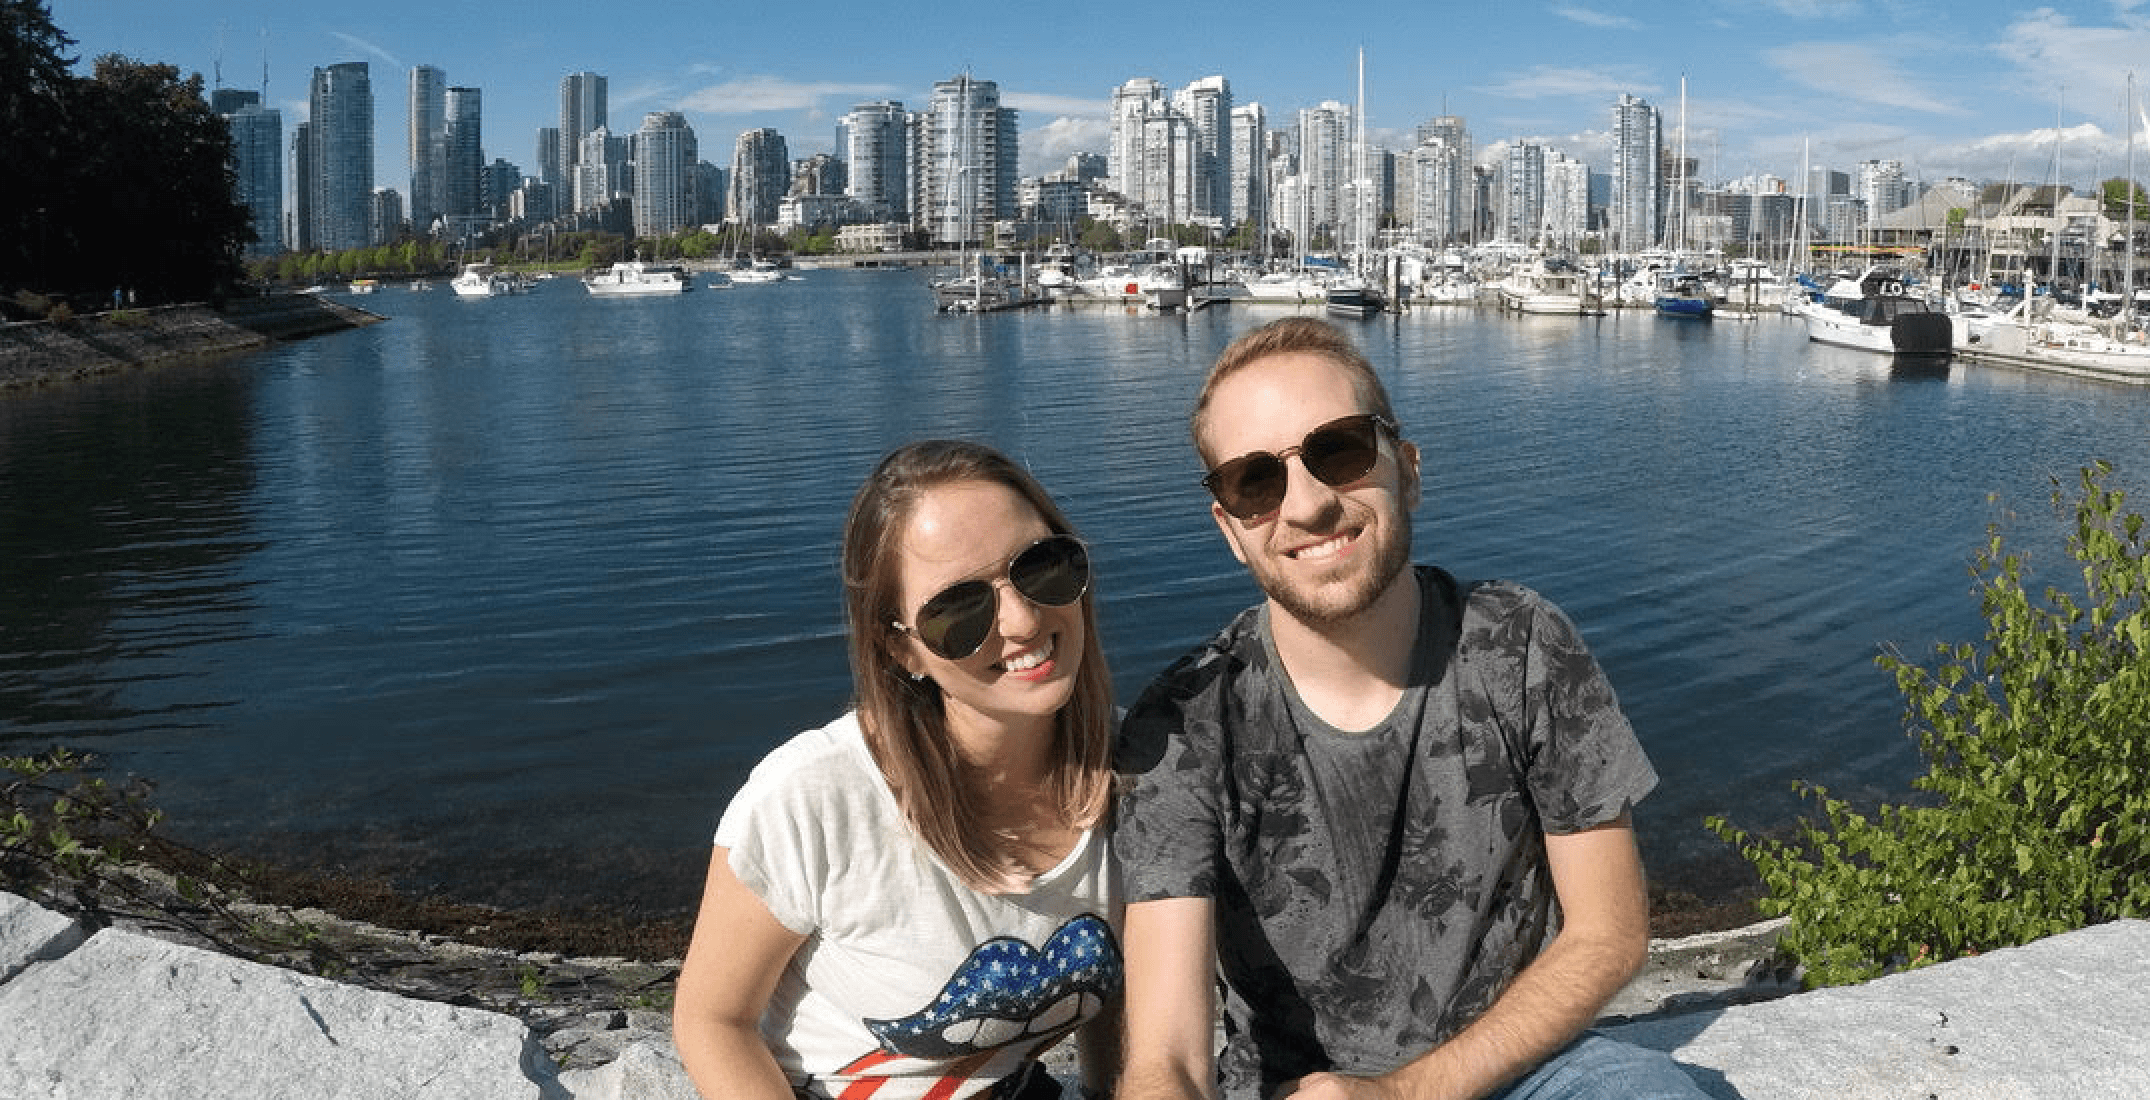 These tourists lost a GoPro in Vancouver and we want to help return it